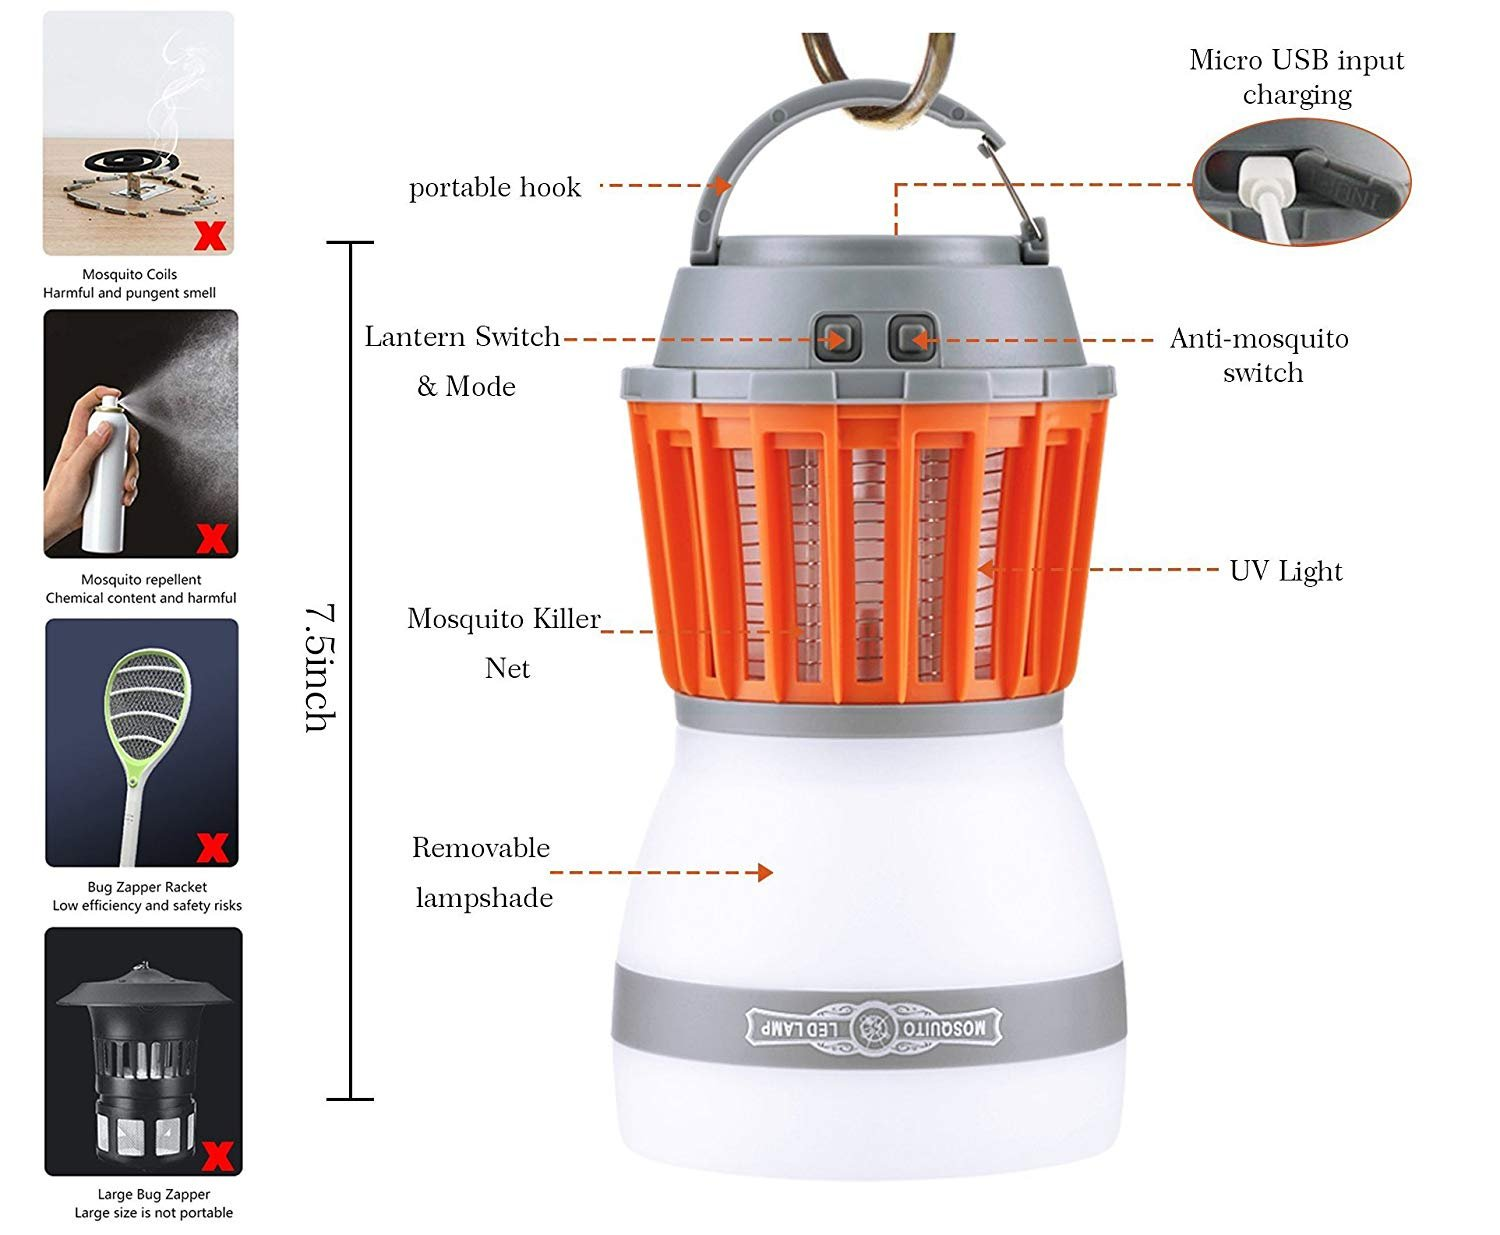 Fellee Bug Zapper, 2-in-1 Mosquito Killer & Camping Lamp Natural Mosquito Killer Lamp Travel Camping Lantern Pest Control USB IP67 Waterproof Insect Repeller for Indoor &Outdoor by Fellee (Image #2)